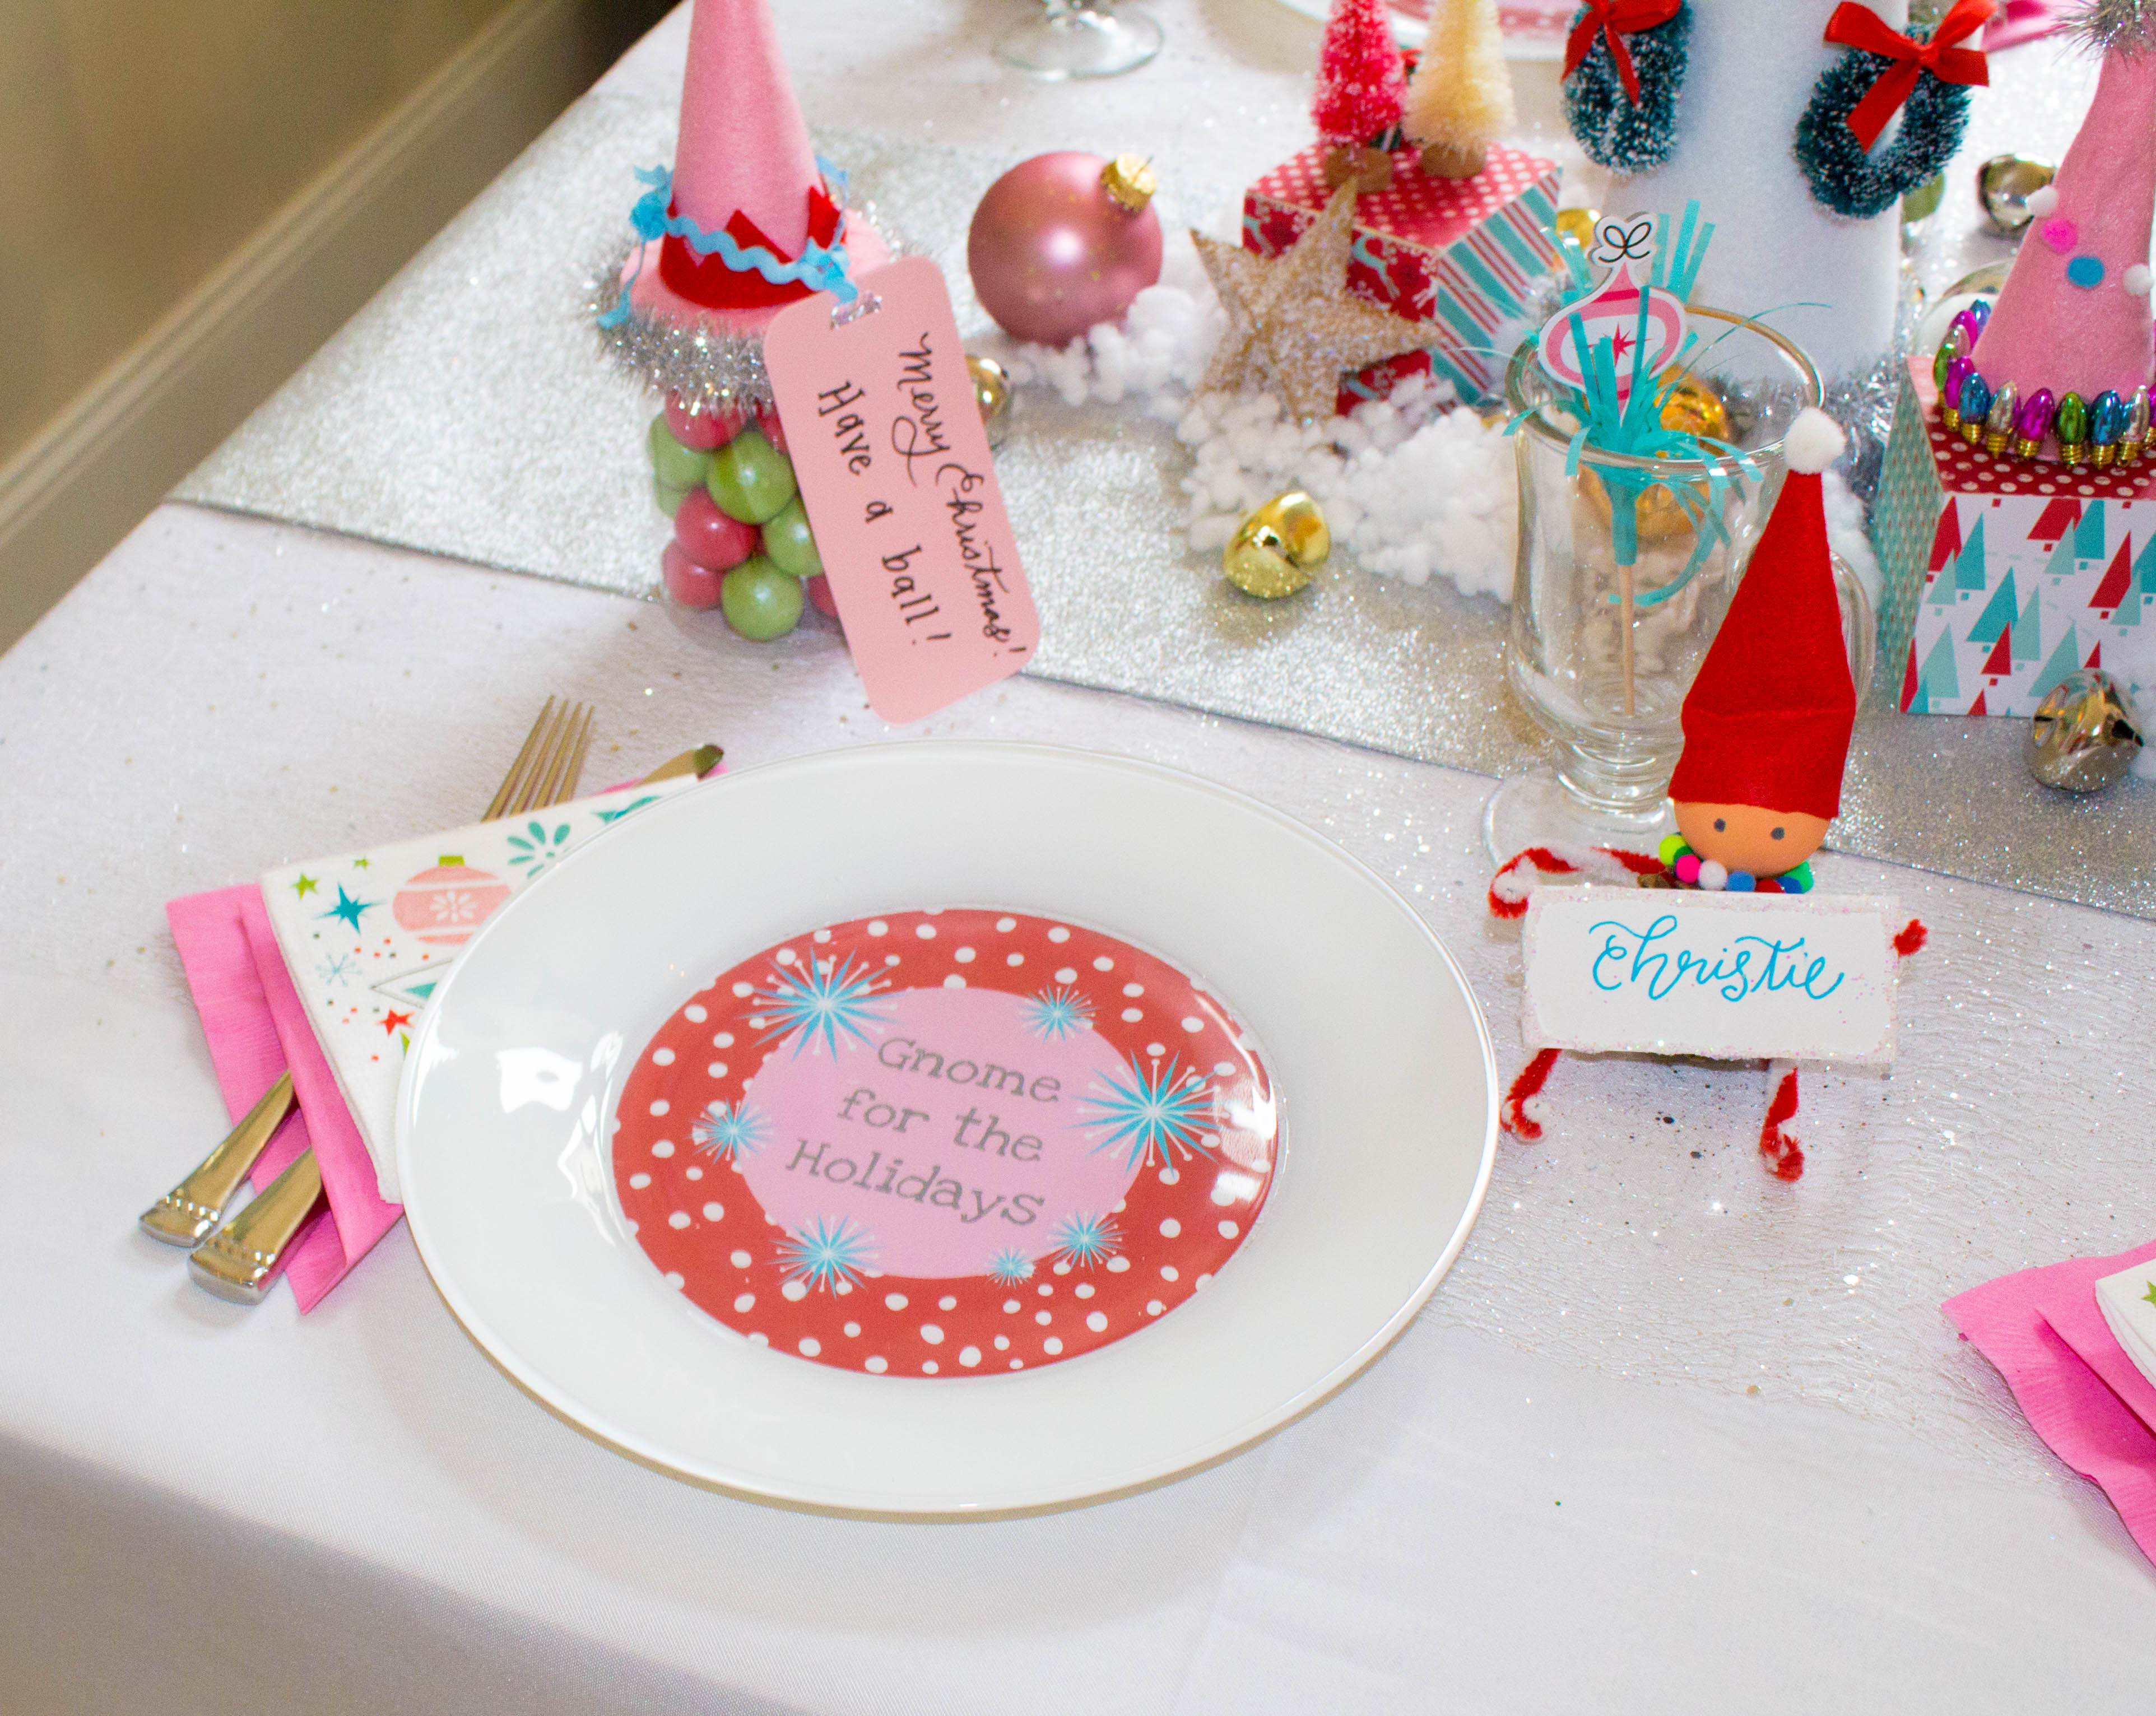 gnome-elf-party-table-christmas-table-decorating-ideas-21